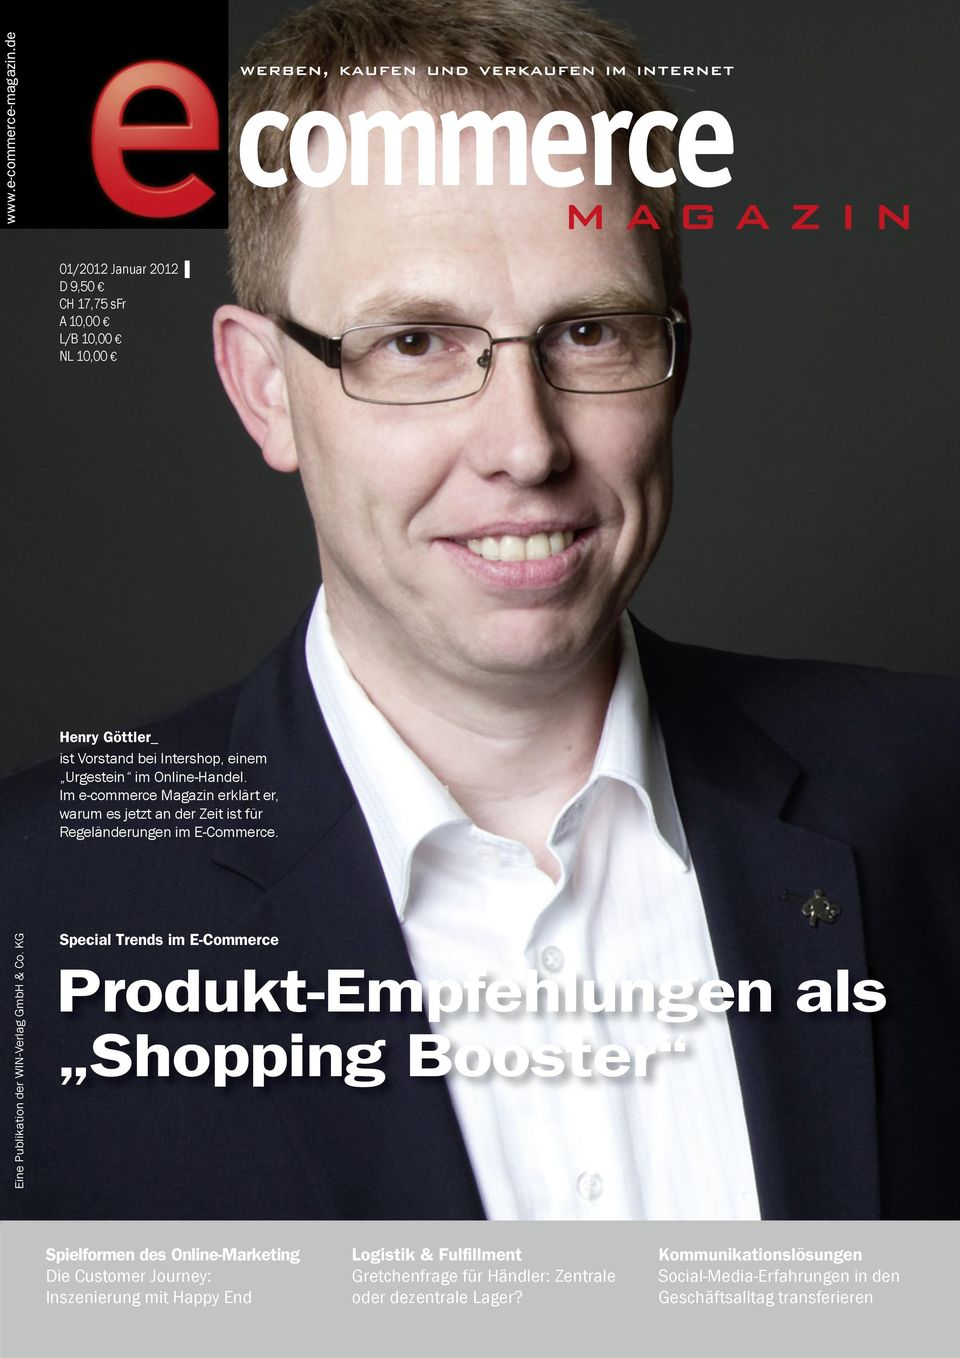 KG Special Trends im E-Commerce Produkt-Empfehlungen als Shopping Booster Spielformen des Online-Marketing Die Customer Journey: Inszenierung mit Happy